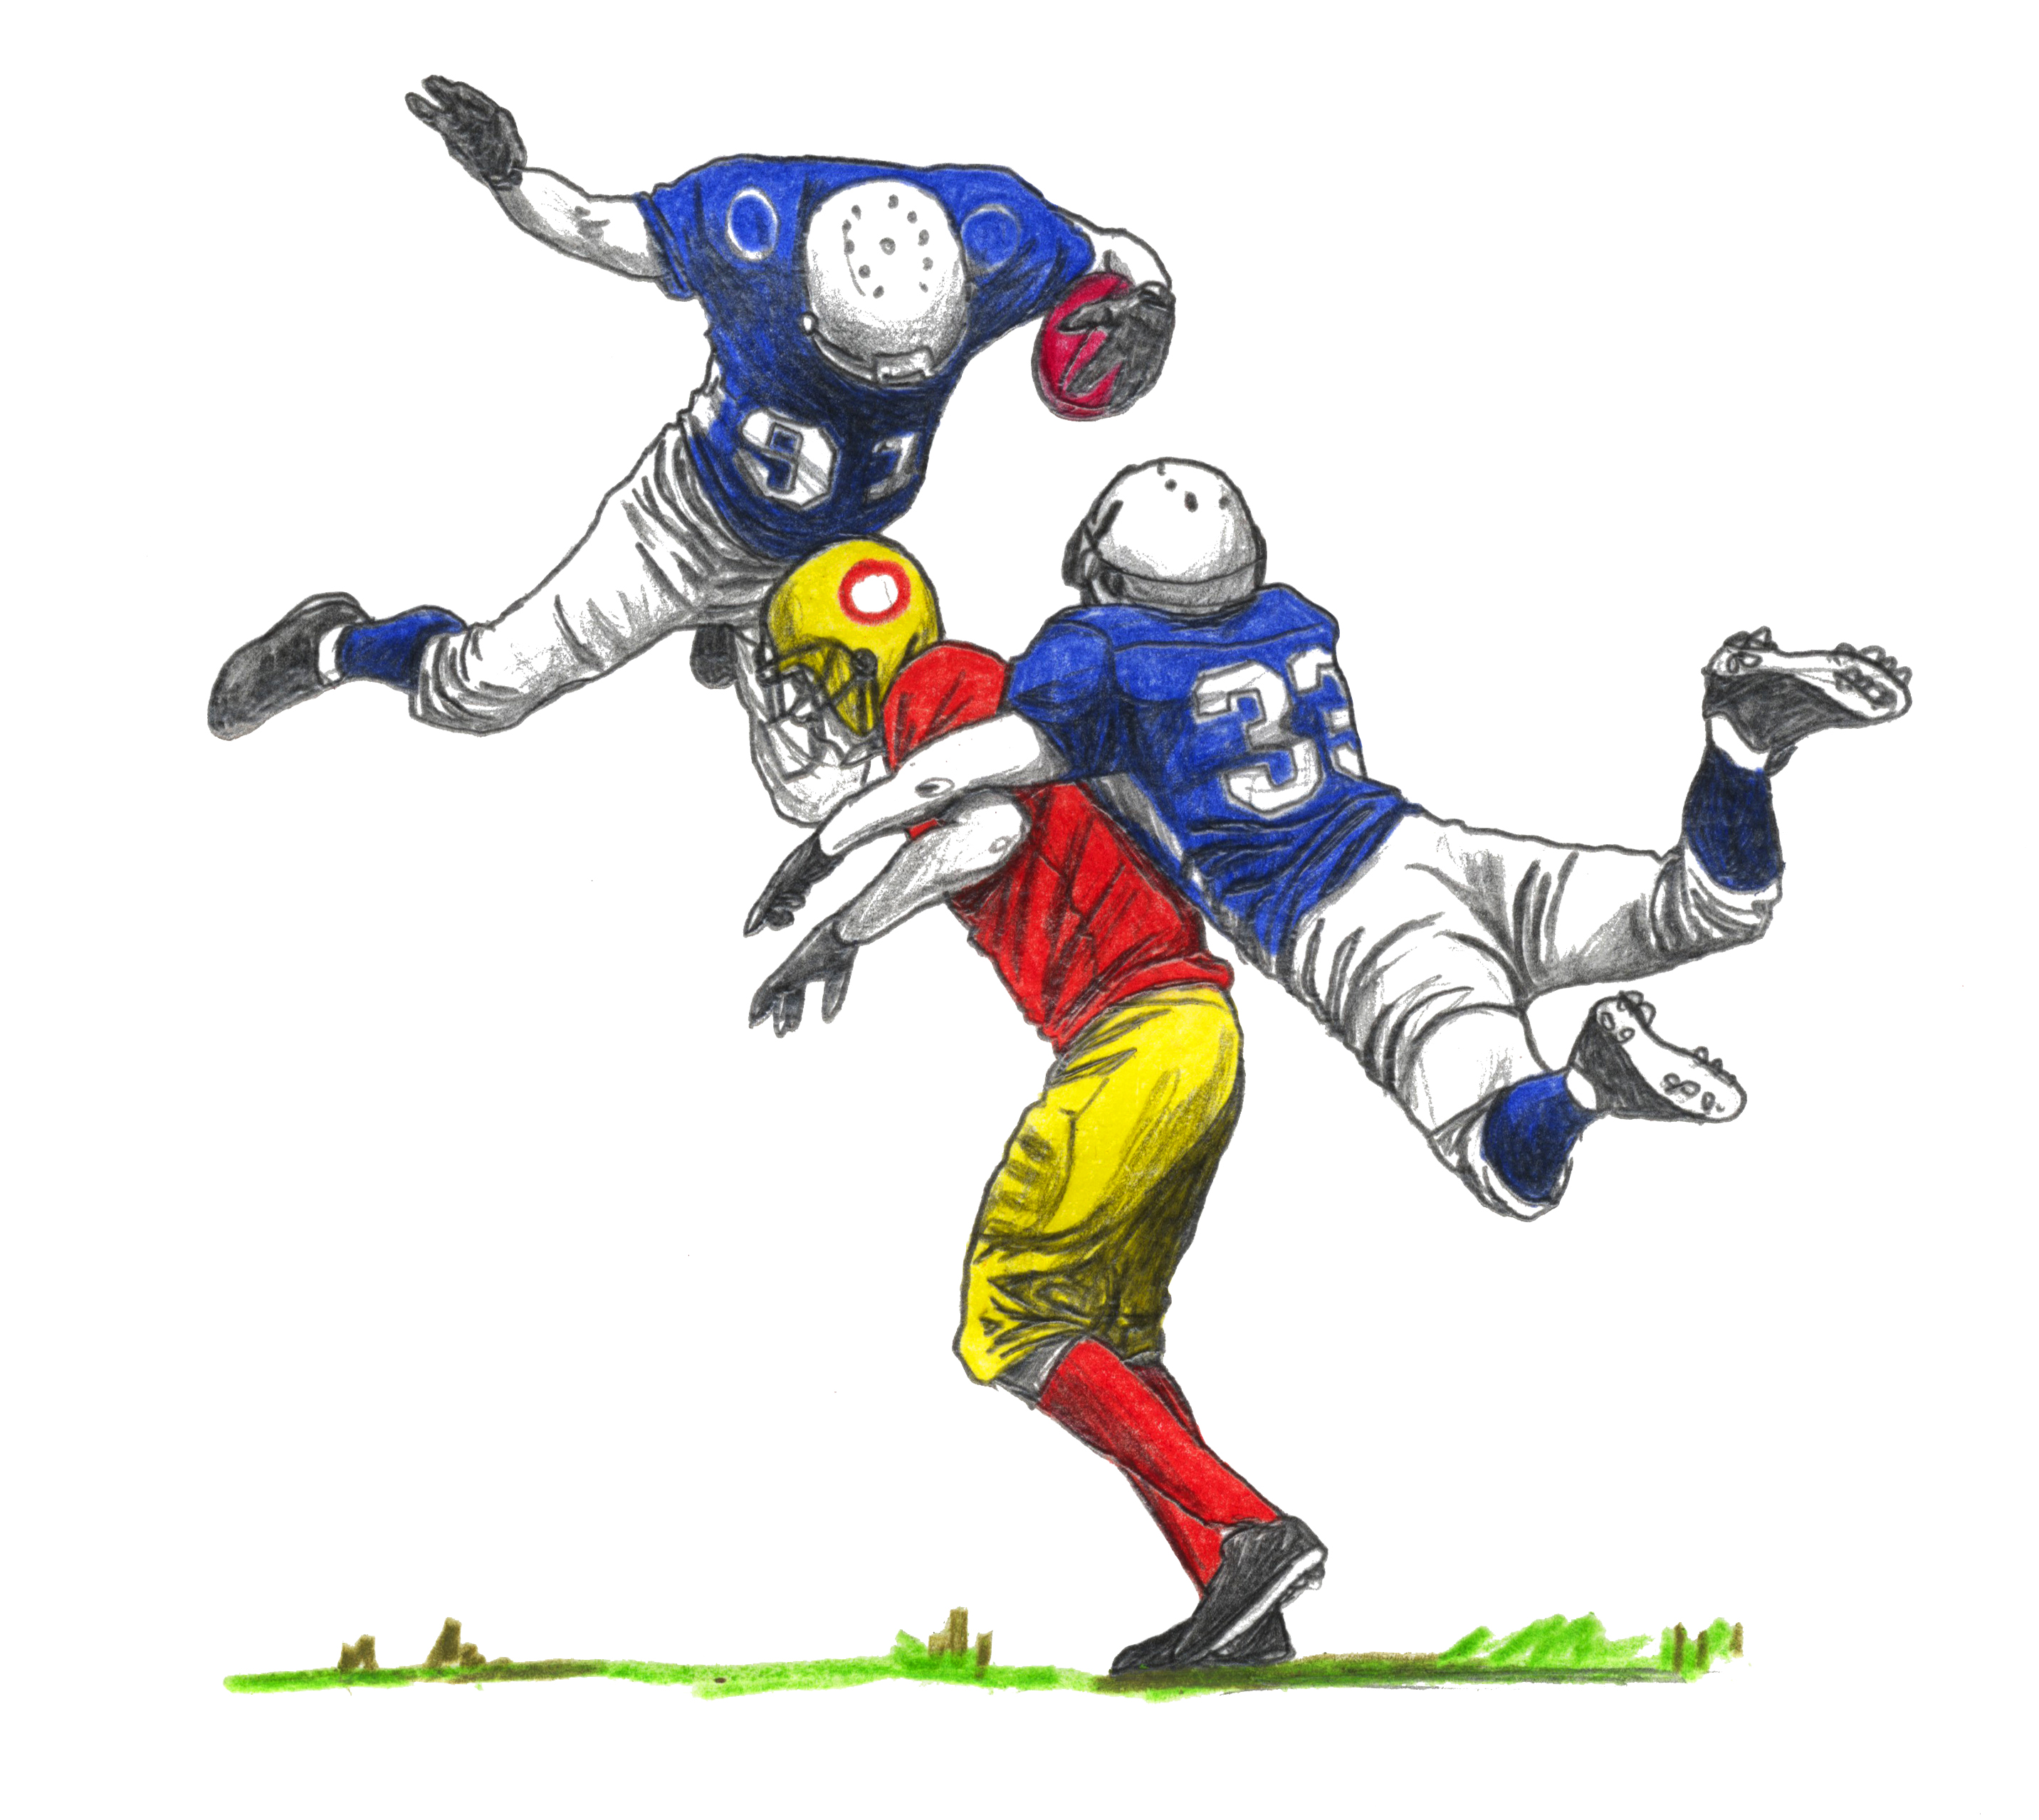 Two football players leaping to tackle a third